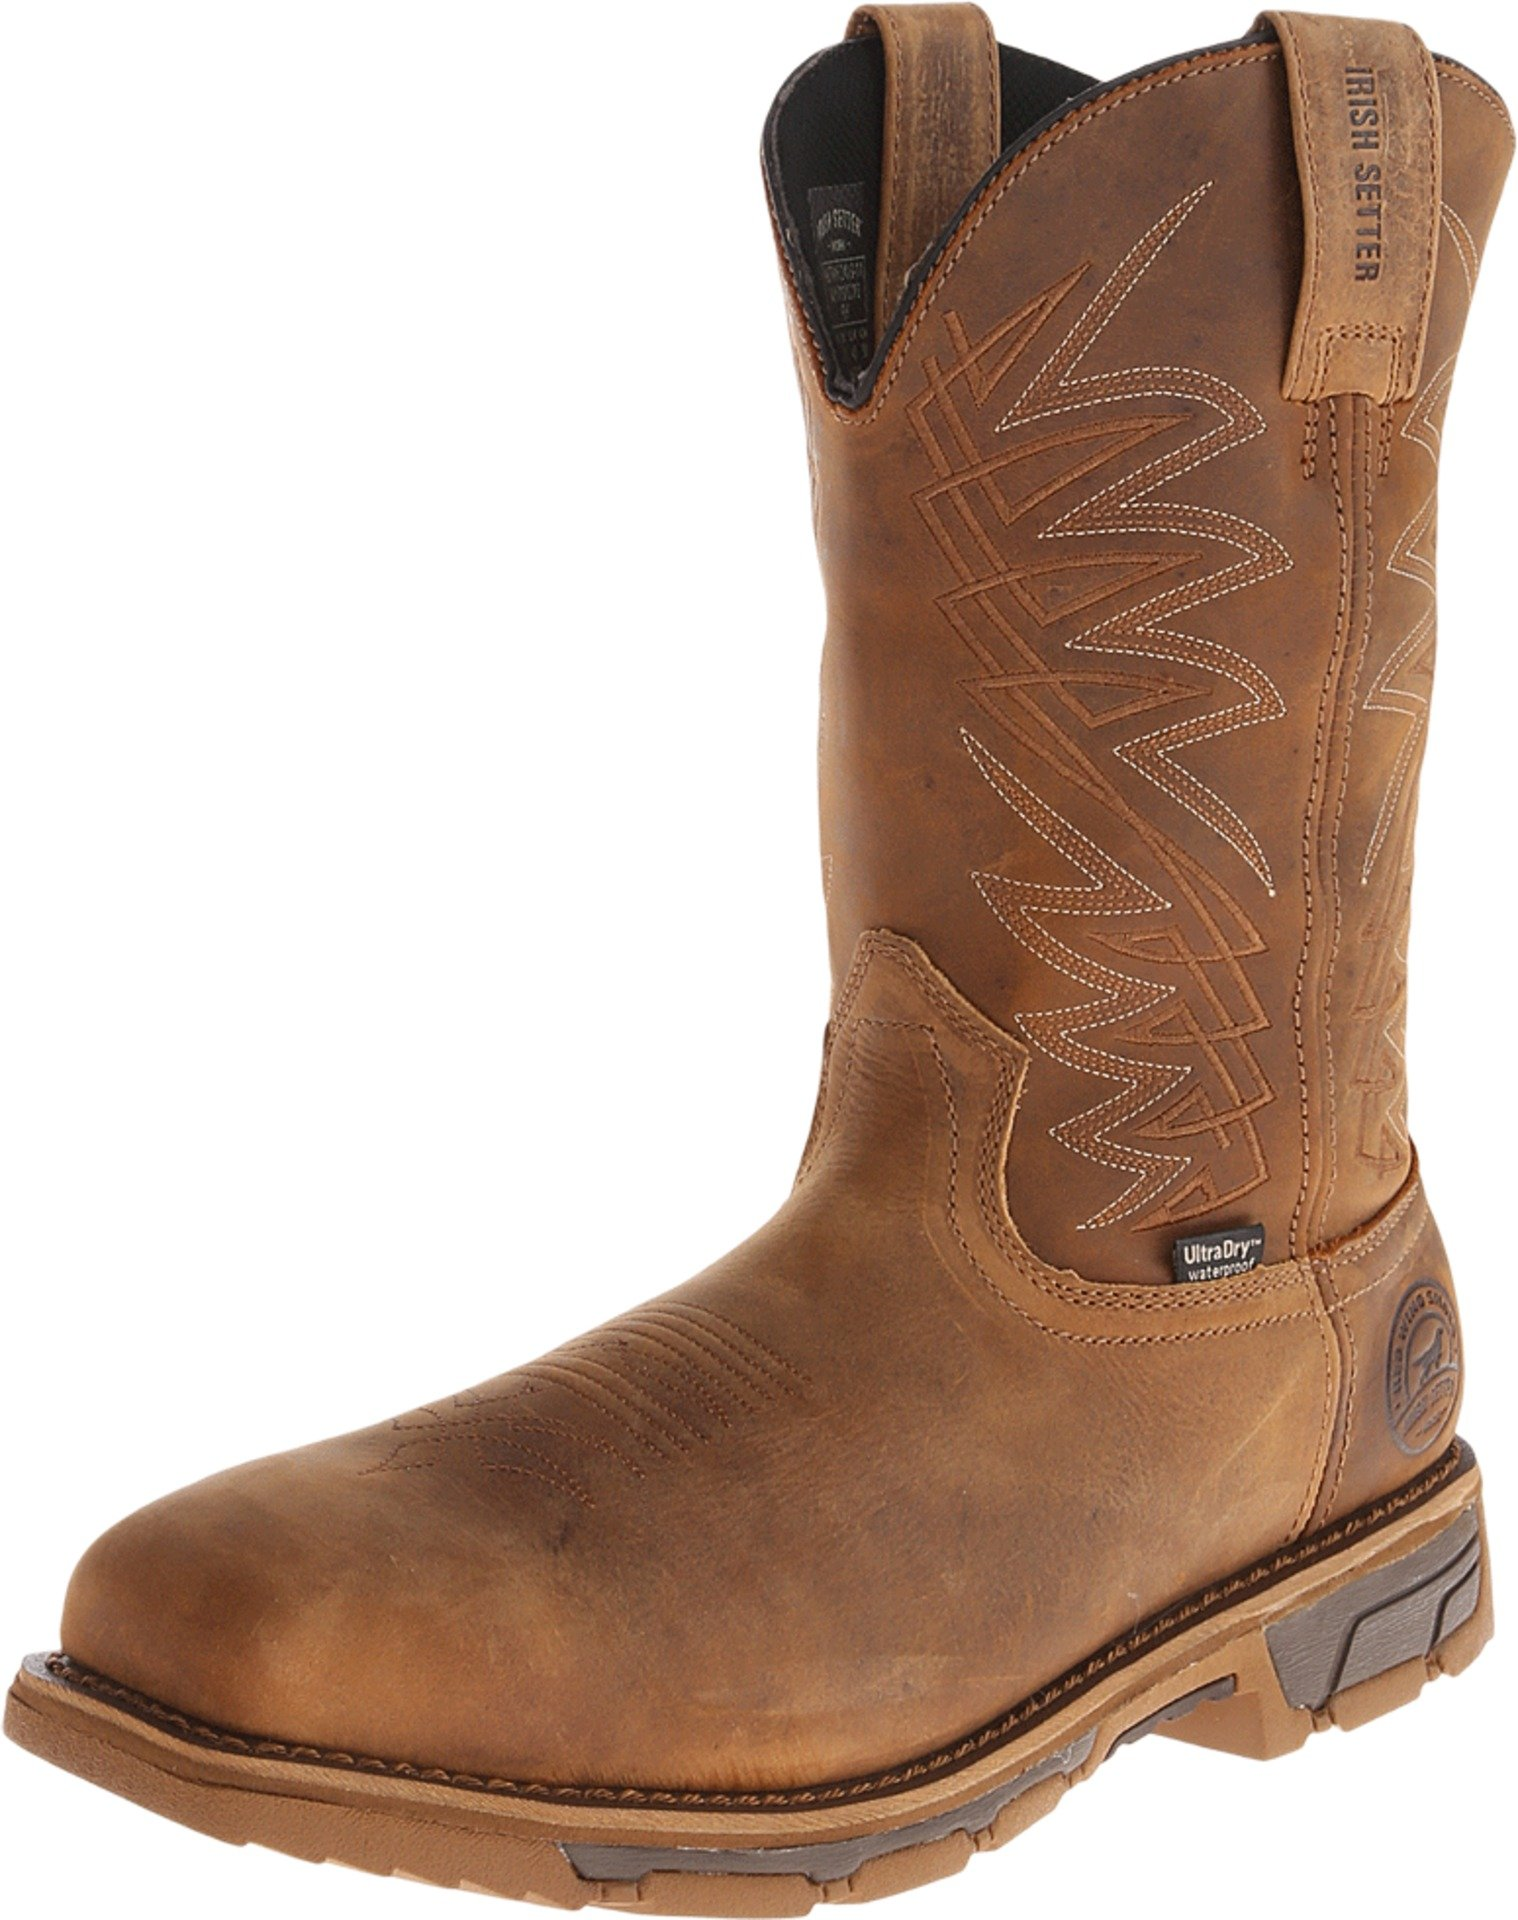 Irish Setter Work Men's 83912 Marshall 11'' Pull-On Steel Toe Waterproof Work Boot,Brown,9 D US by Irish Setter